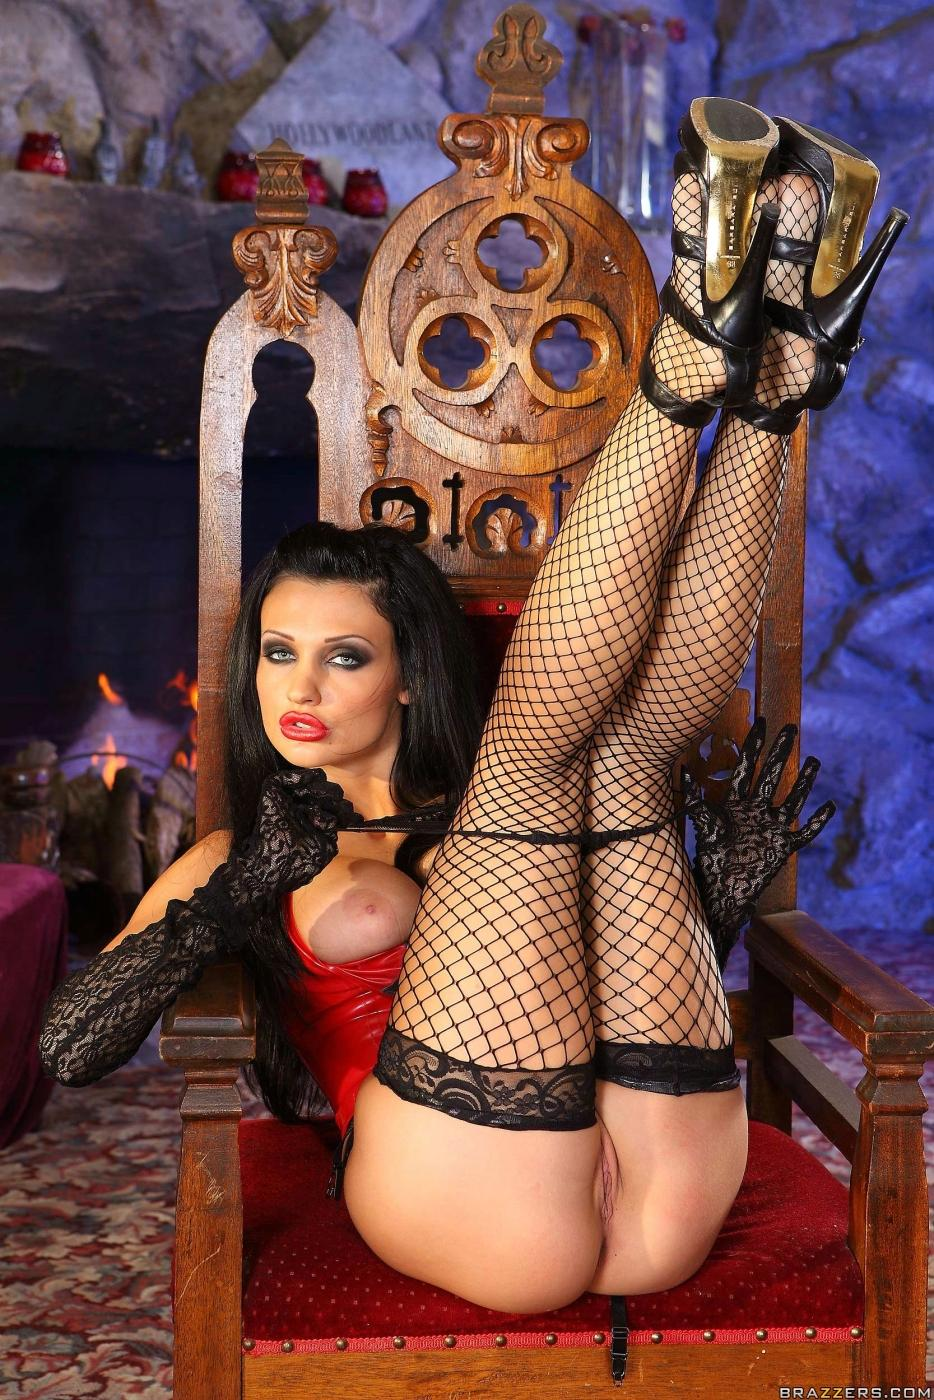 Sexy lady vampire porn images sex galleries